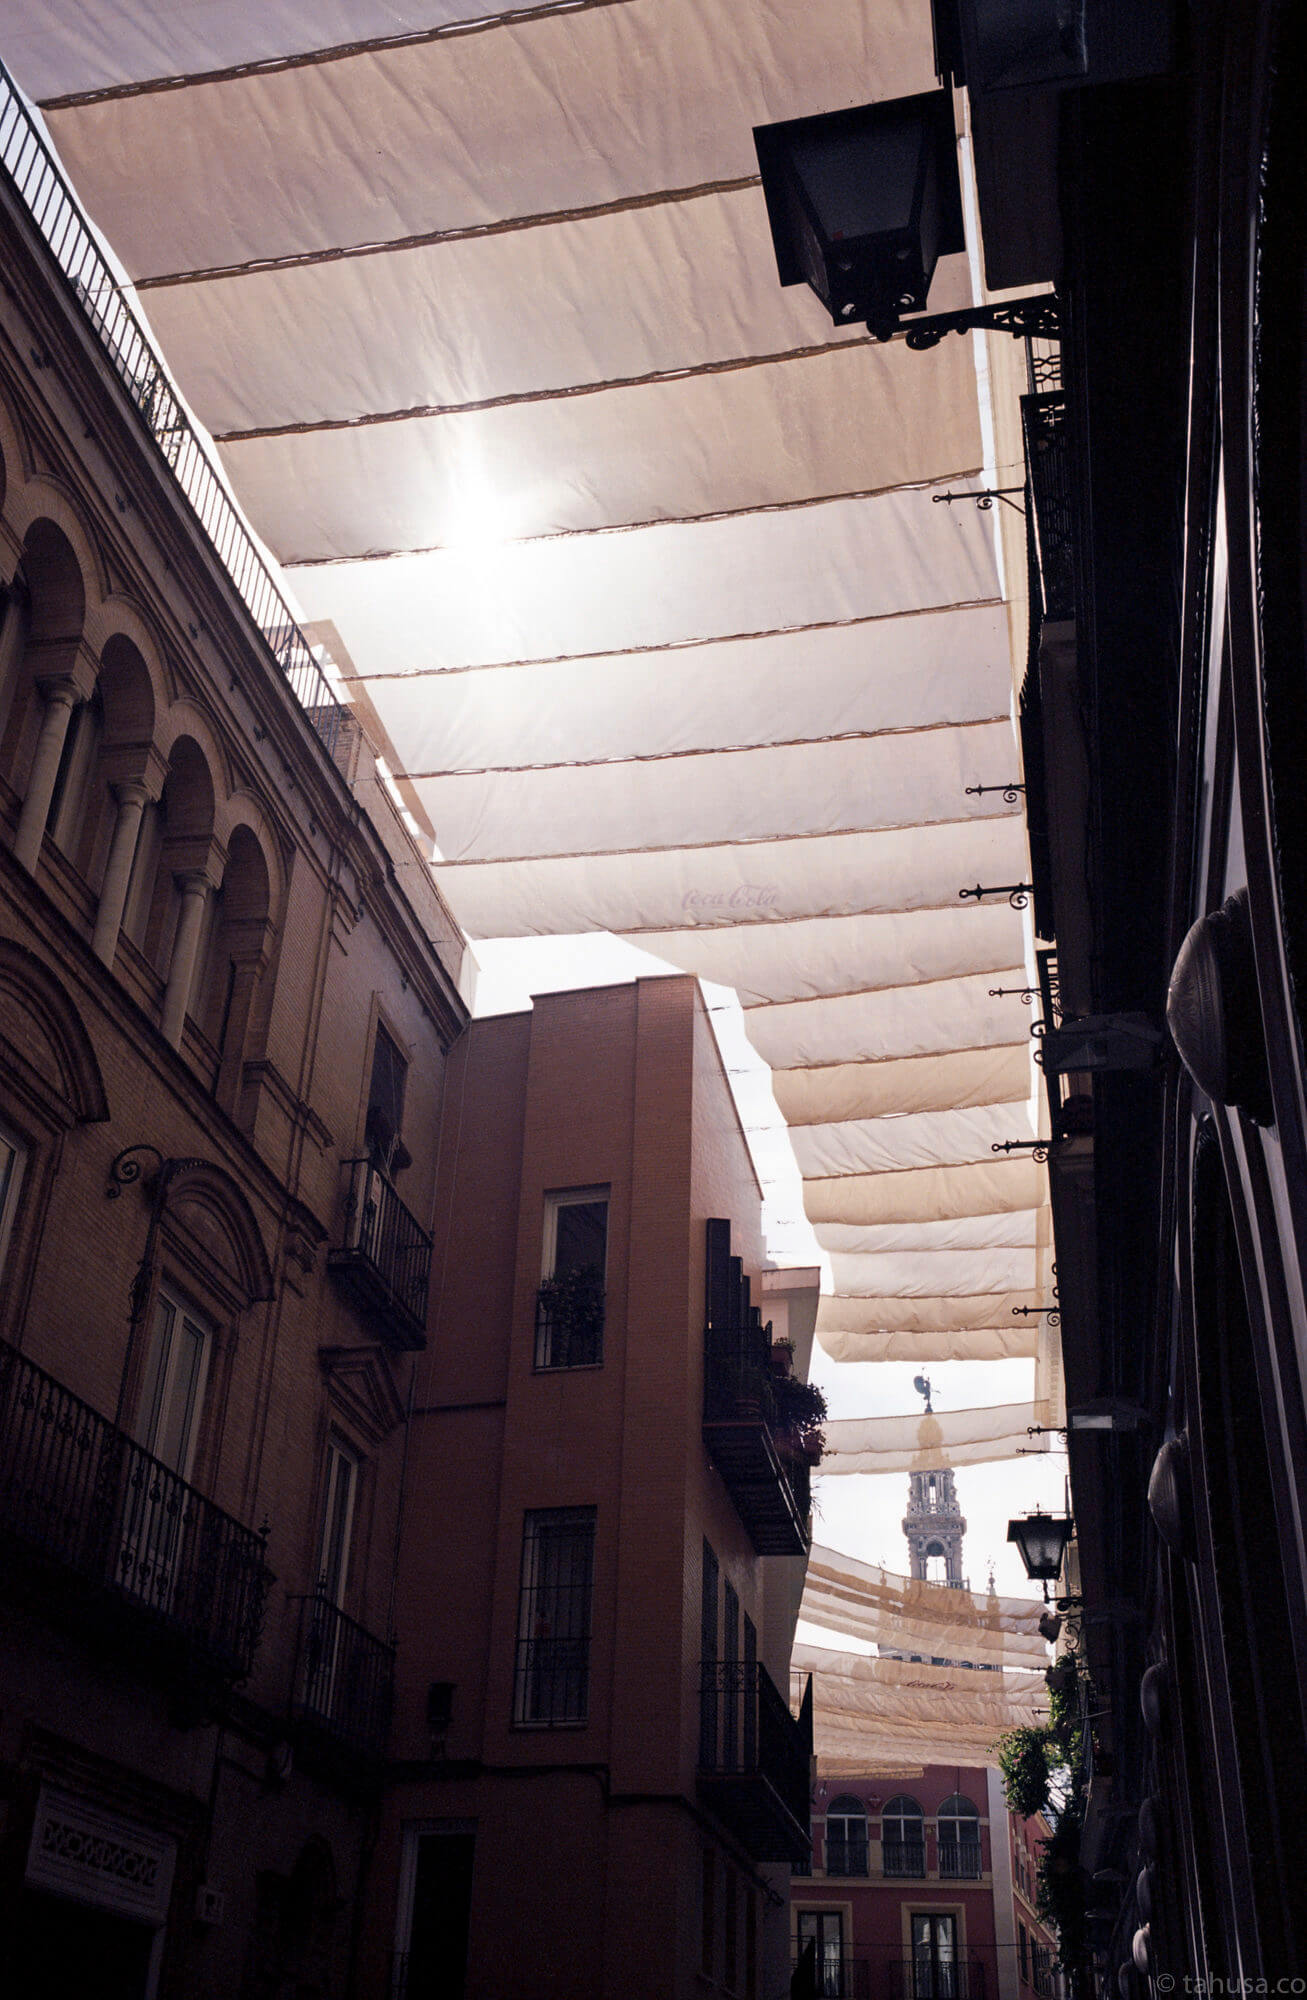 travel-photography-in-spain-sevilla-sunlight-blocked-through-cloths-using-ektar-100-kodak-and-summicron-35mm-f2-8elements-v1-leica-film